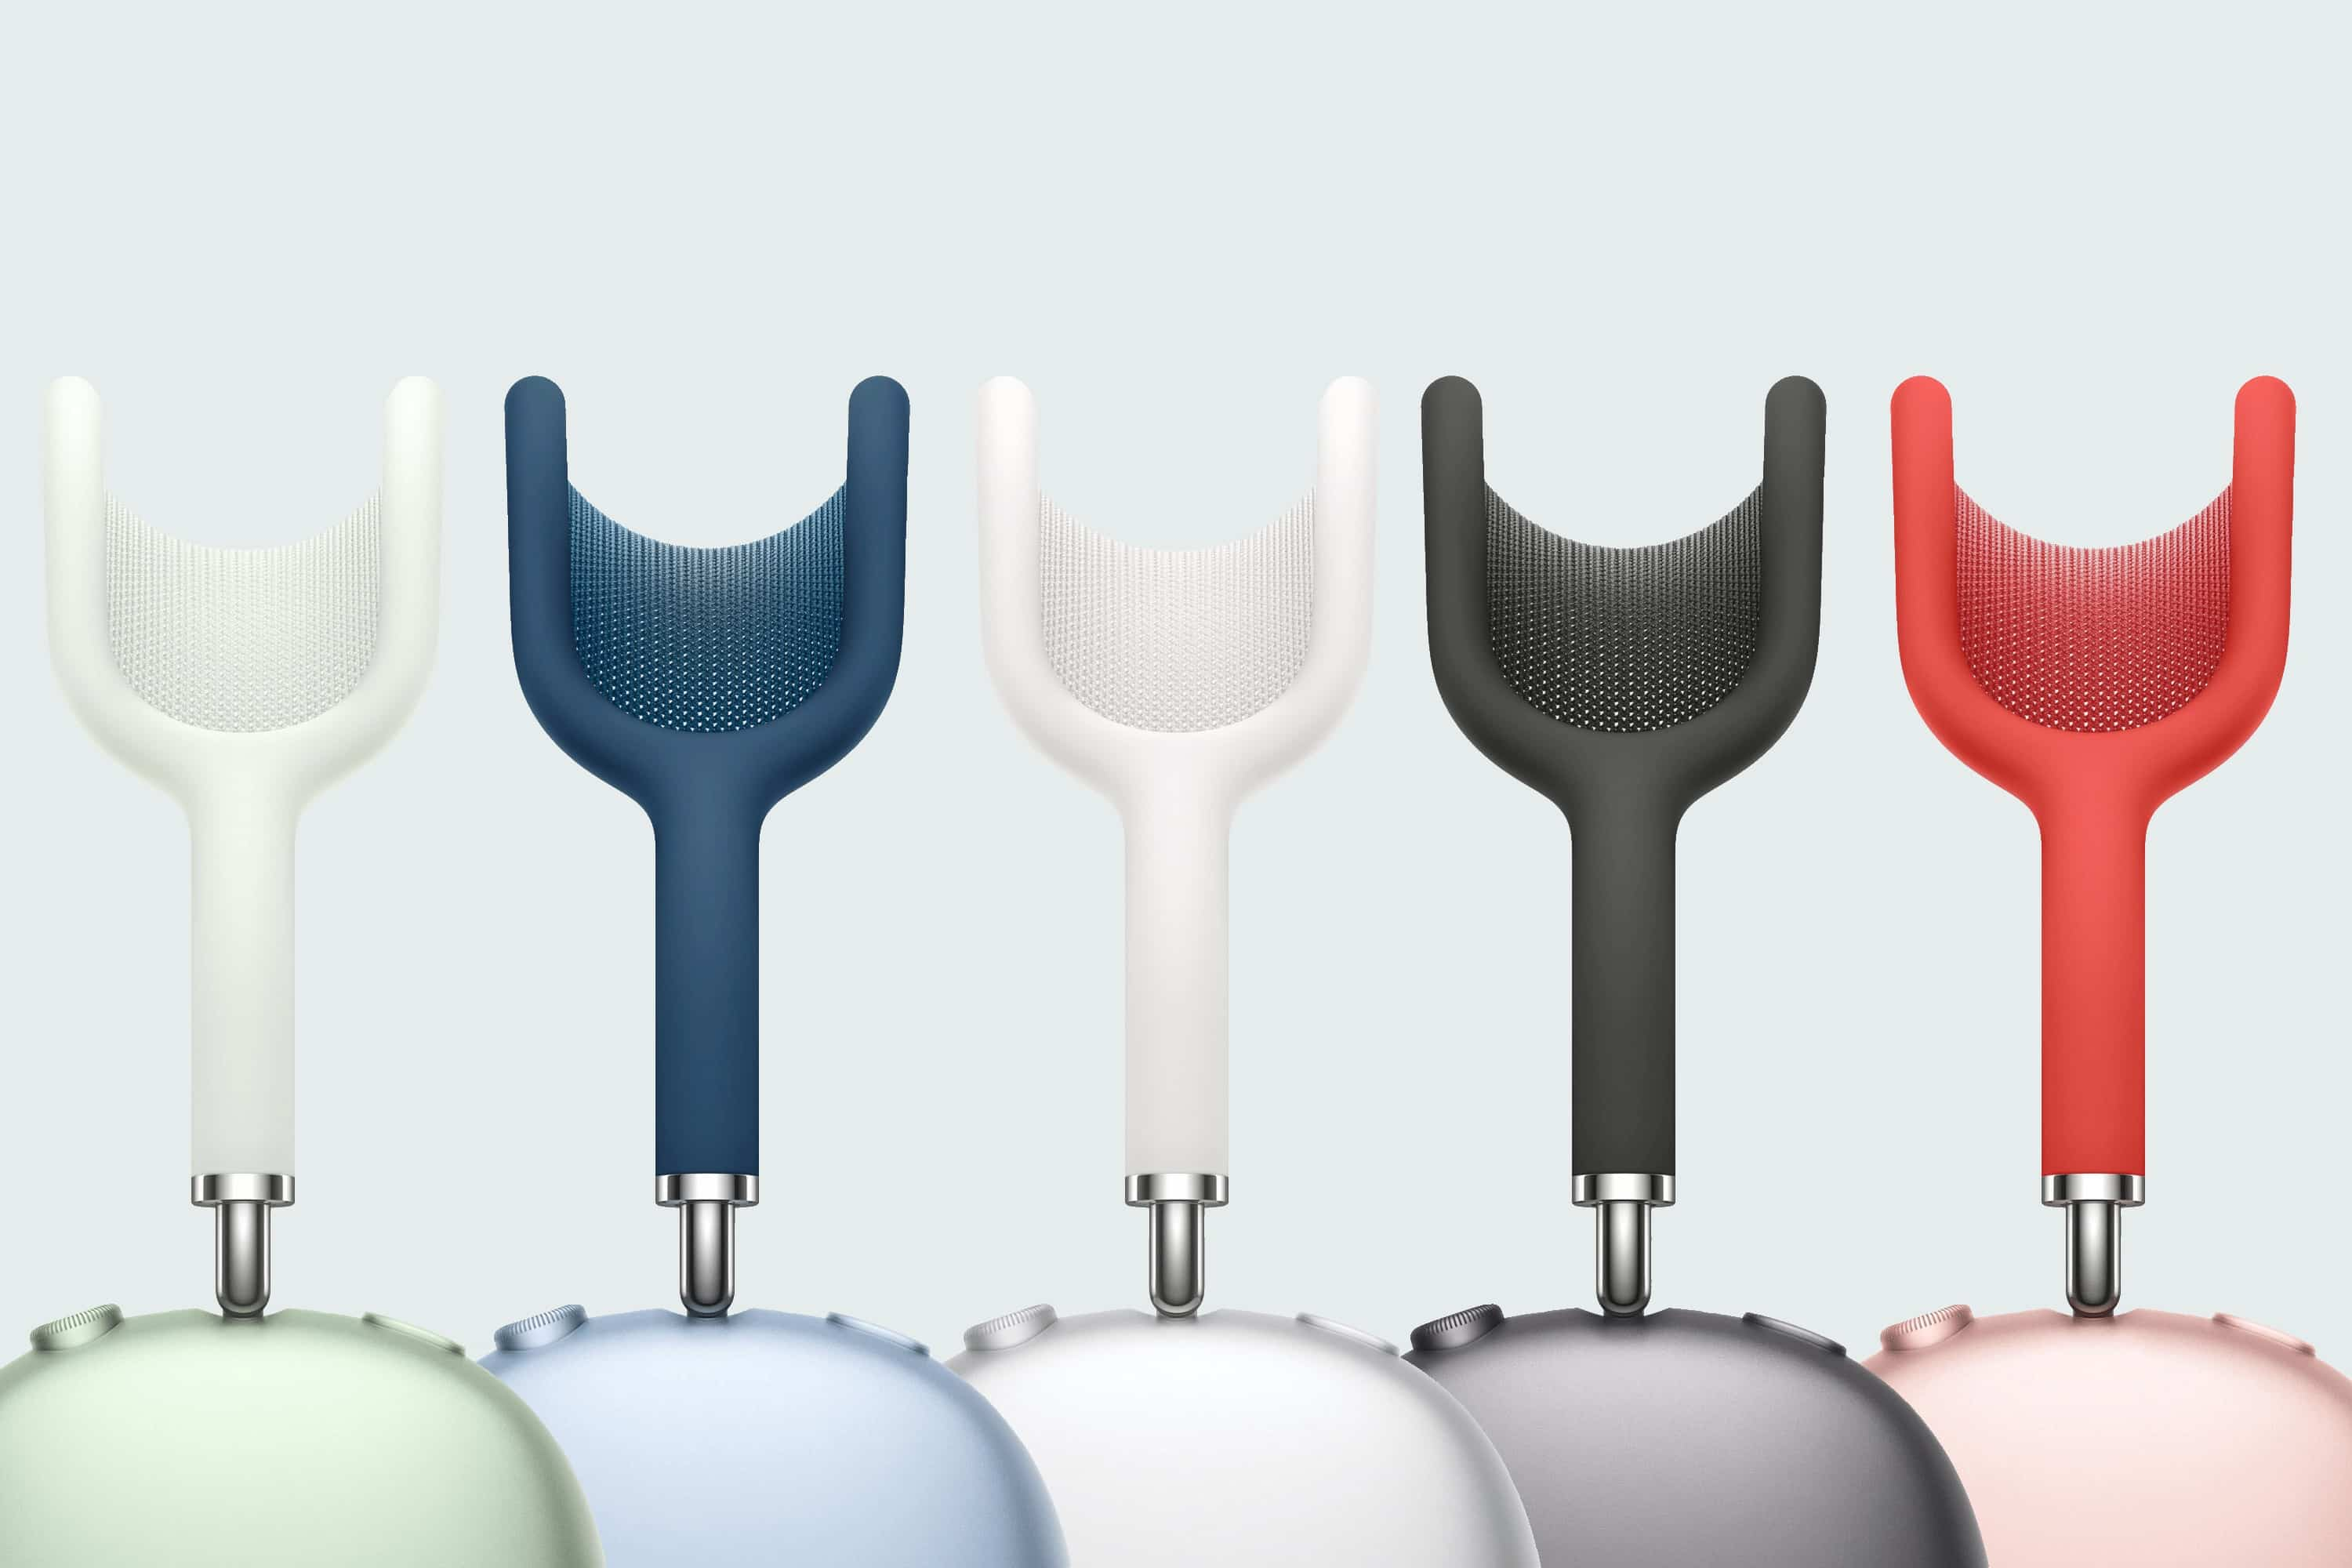 apple-s-airpods-max-soon-to-release-replacement-ear-cushions-20201209-1